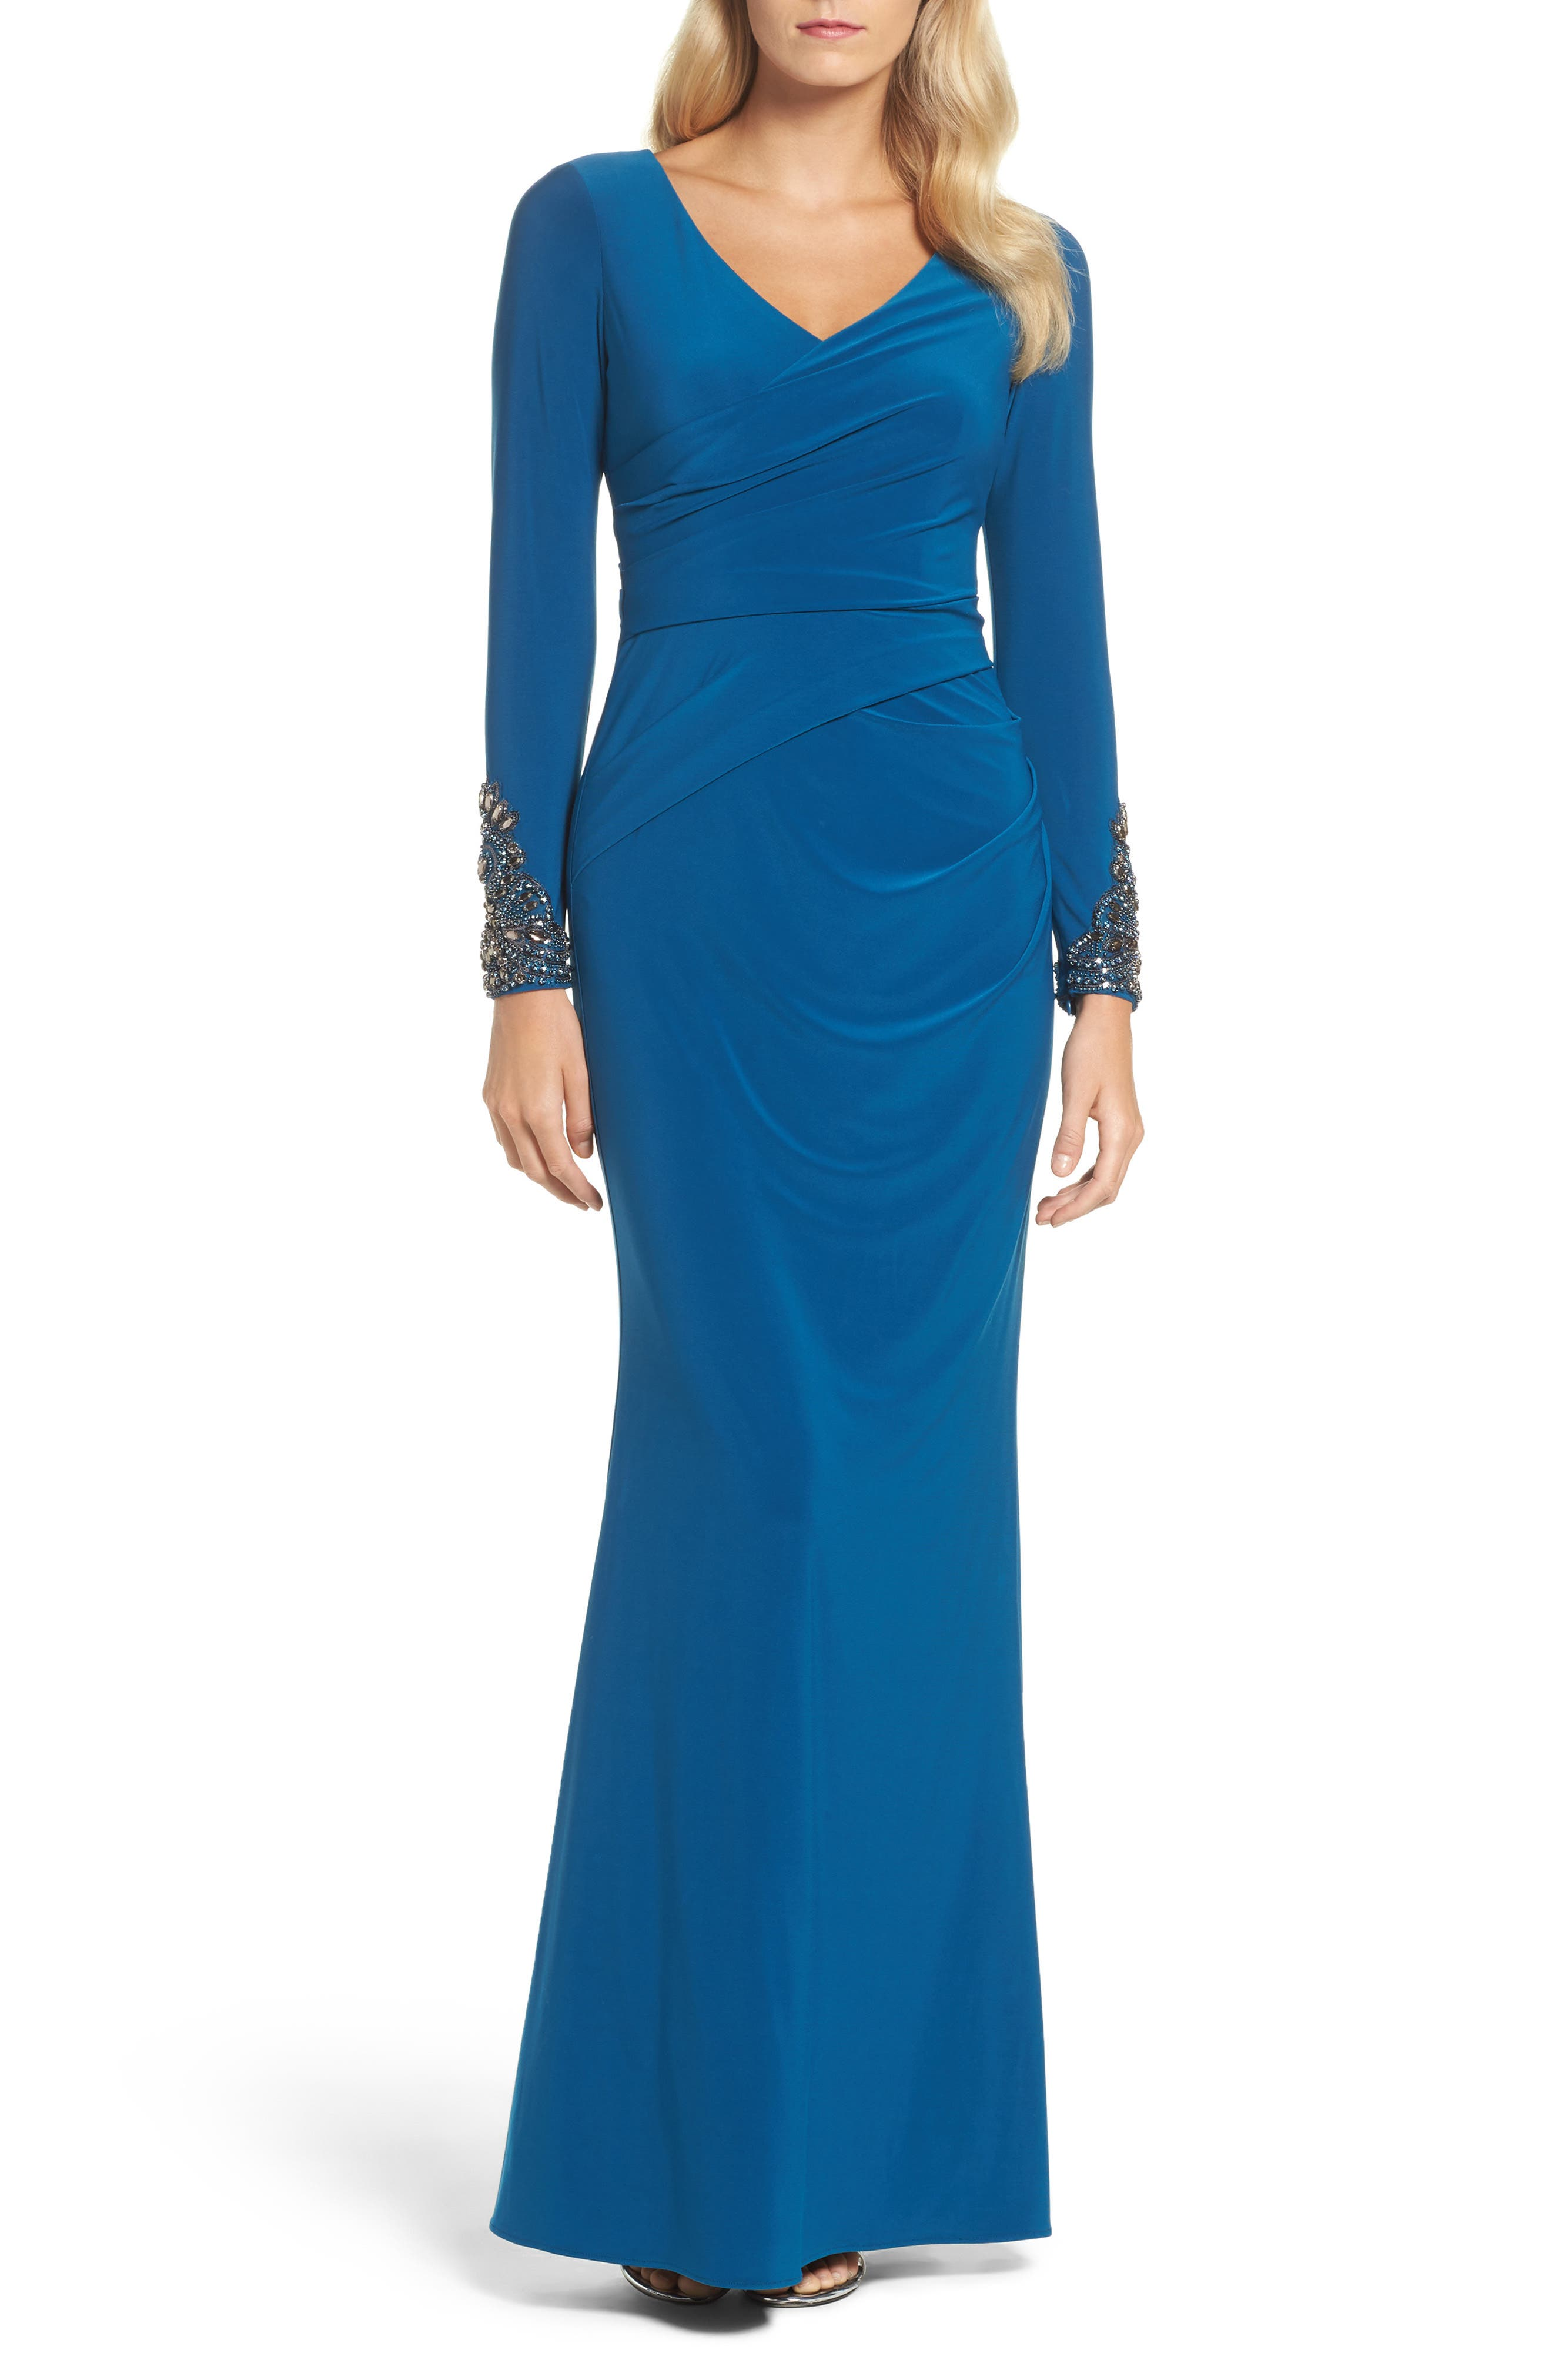 Alternate Image 1 Selected - Adrianna Papell Embellished Sleeve Drape Gown